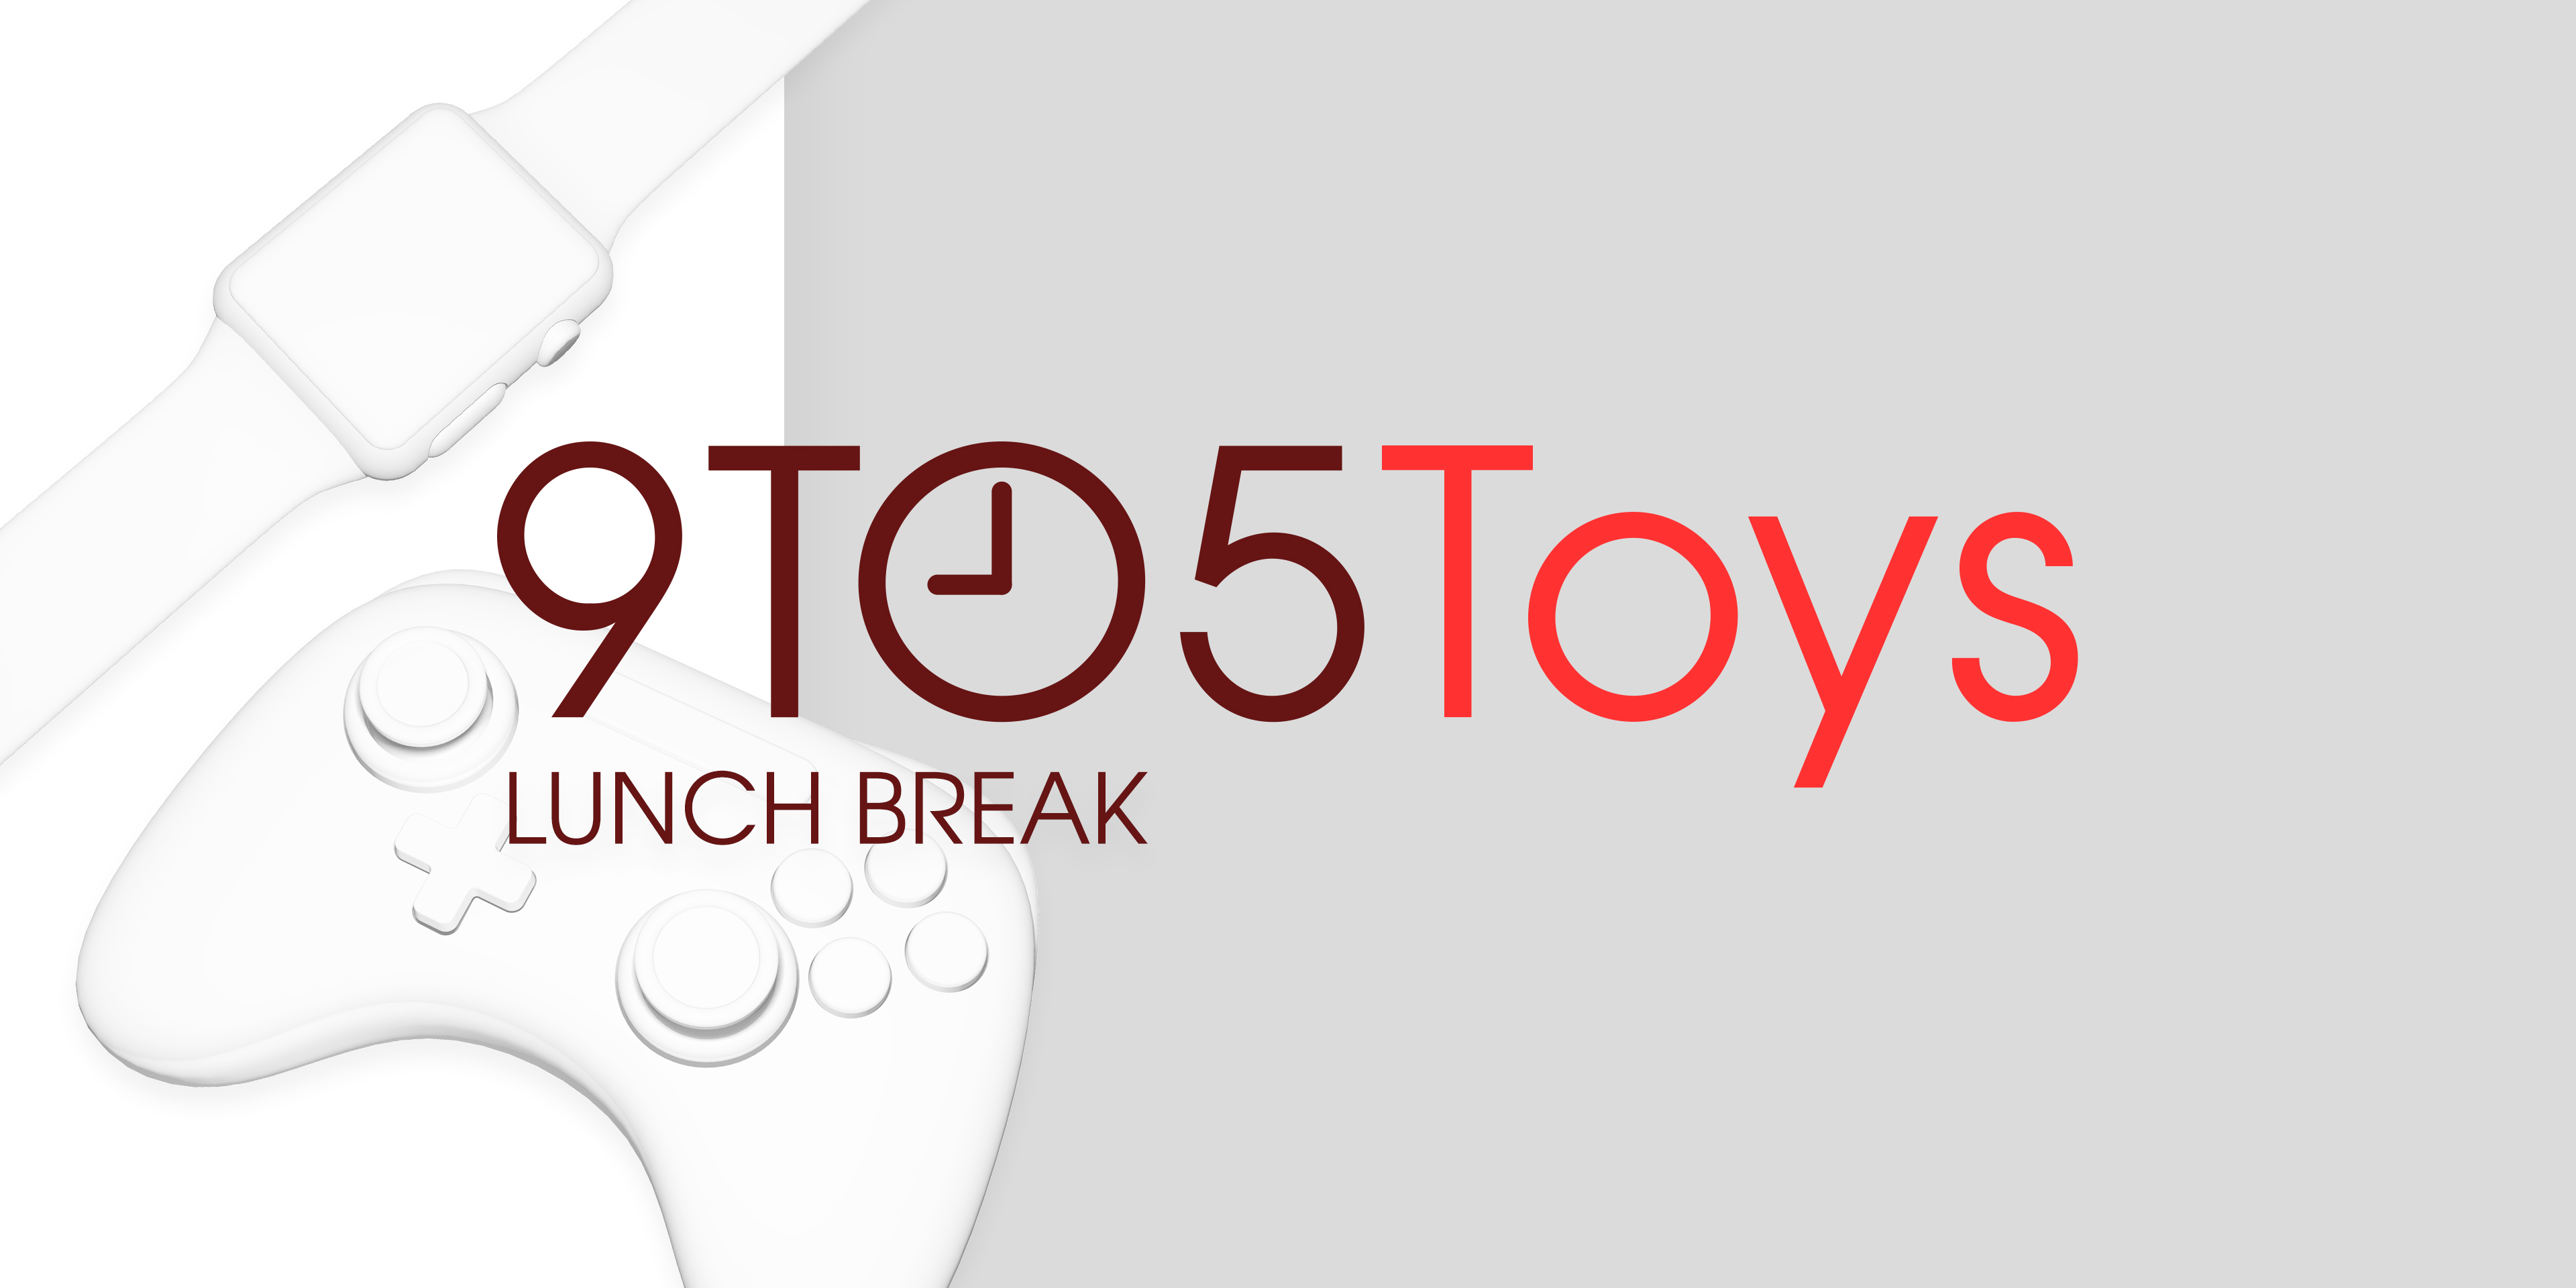 9to5toys lunch break amazon macbook blowout from 989 apple tv 64gb 99 50 ecobee3 thermostat bundle 200 more